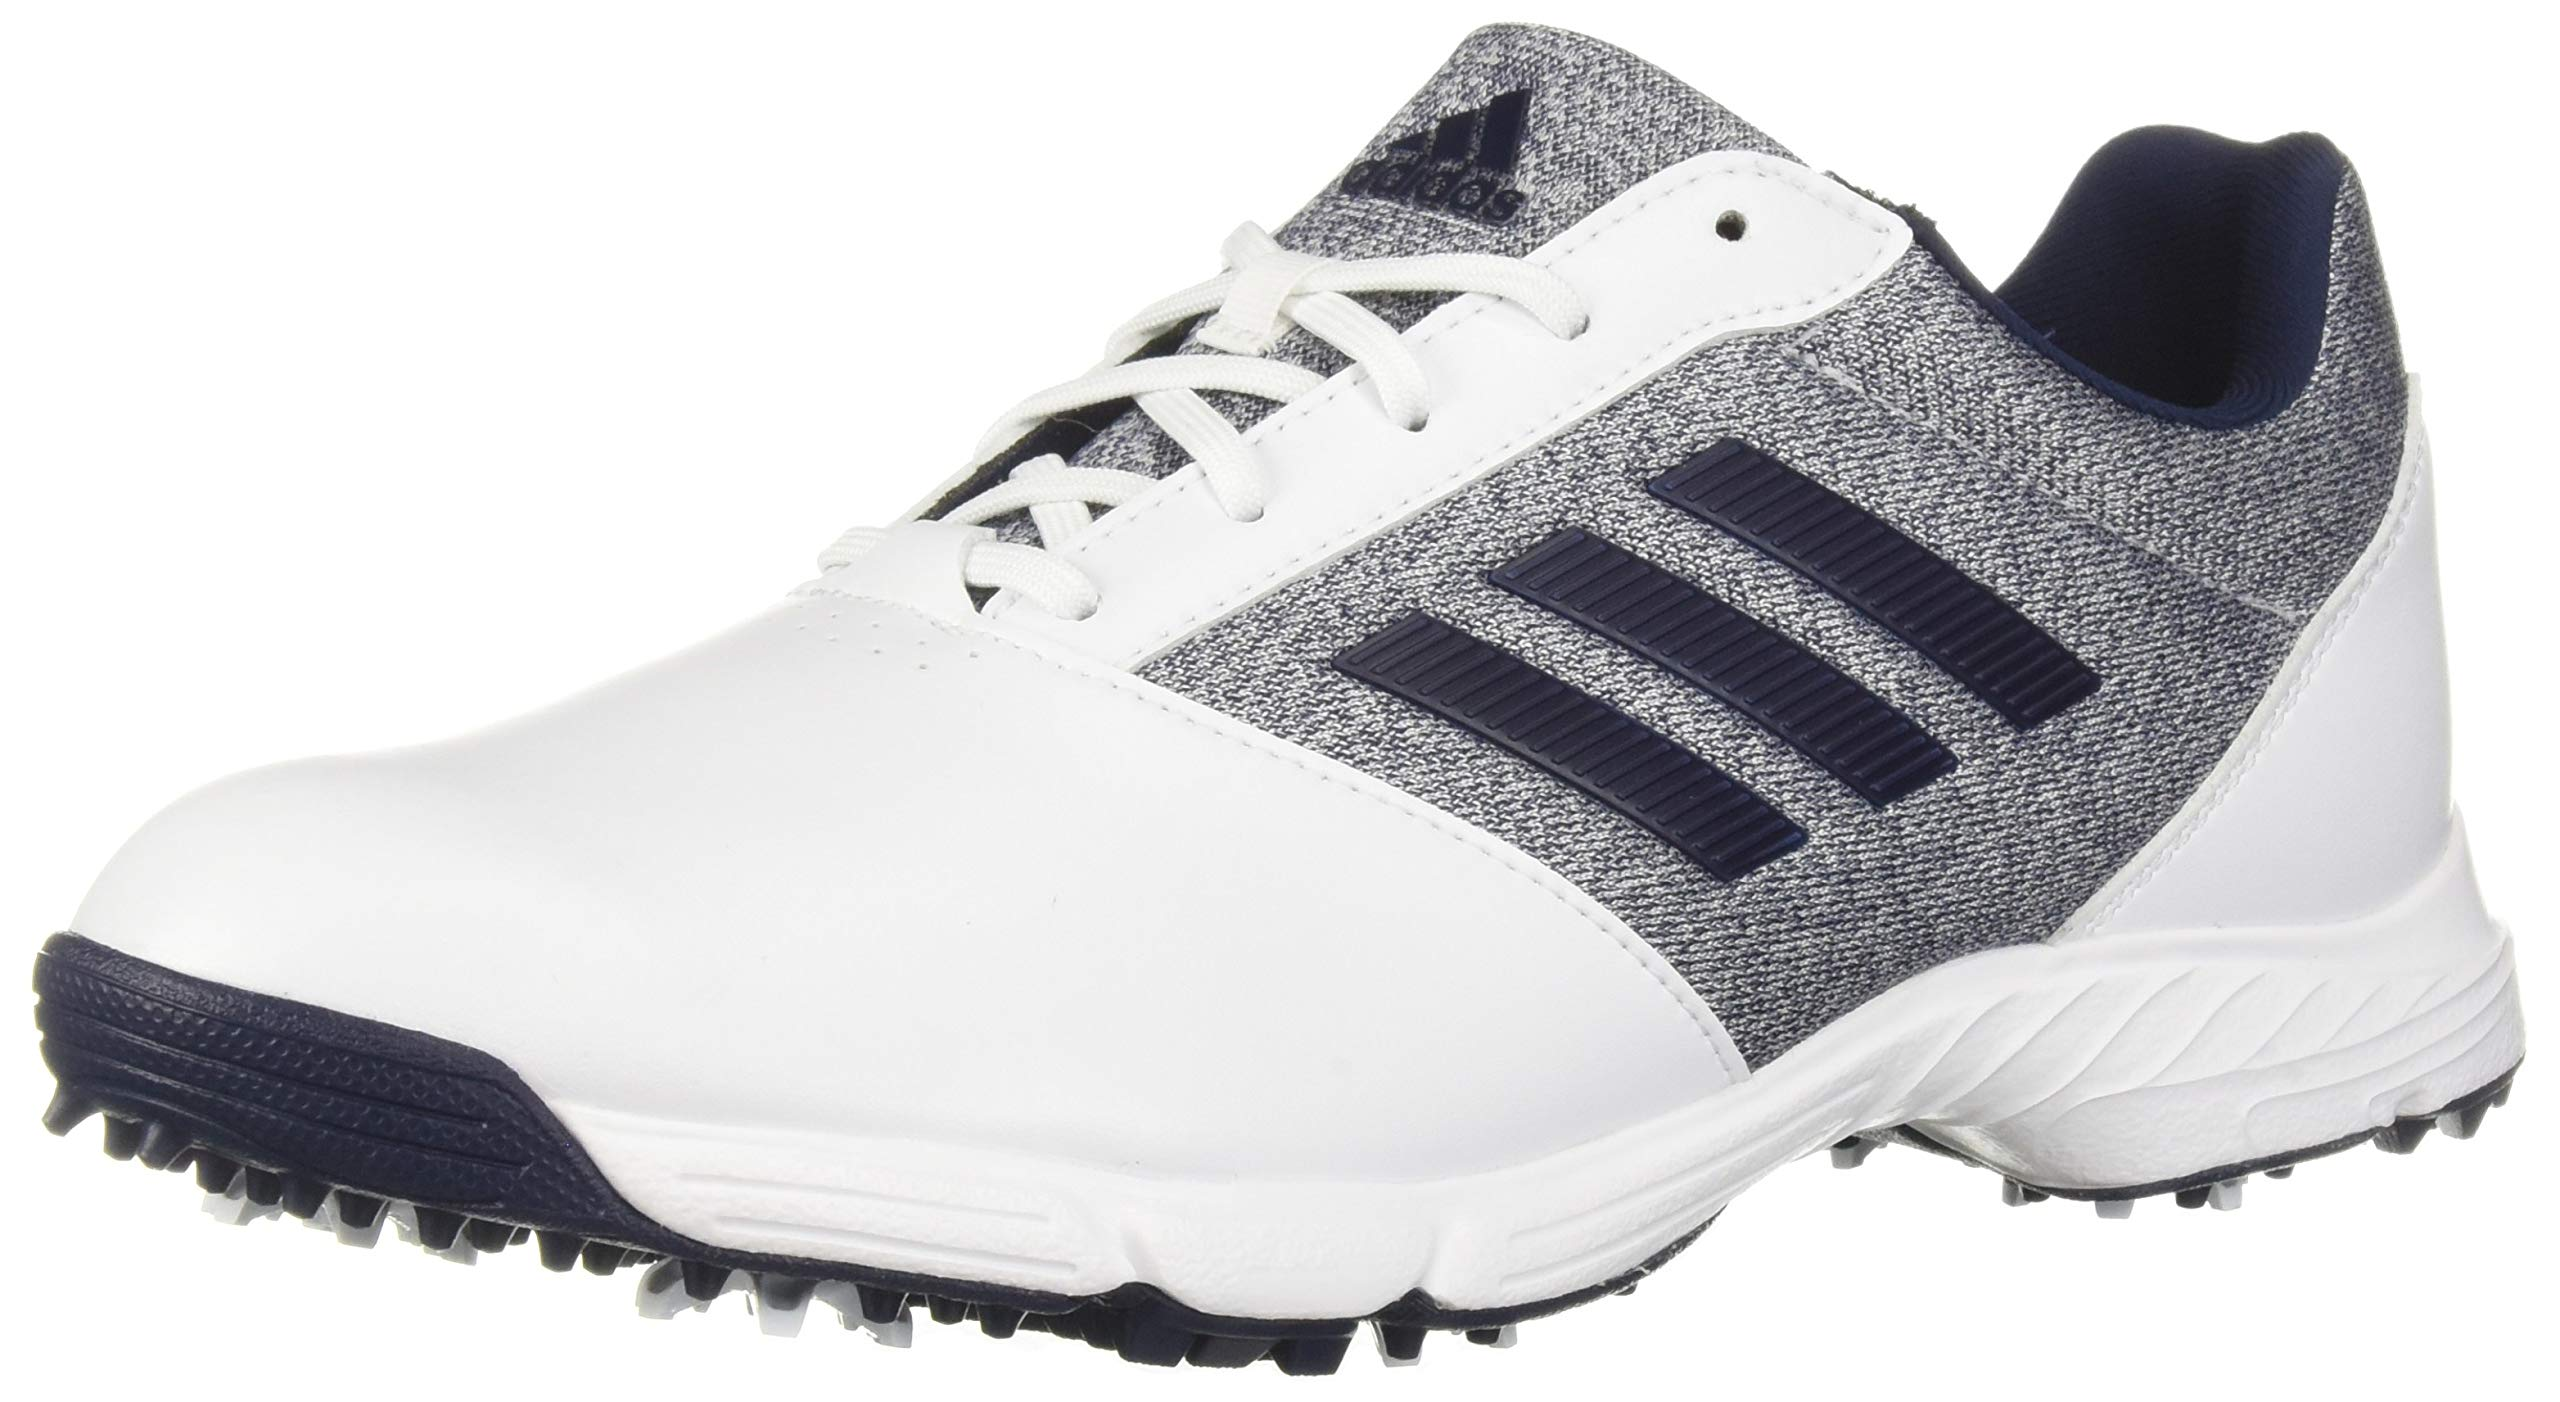 adidas Womens TECH Response Golf Shoe, White/Silver Metallic/Indigo, 9.5 M US by adidas